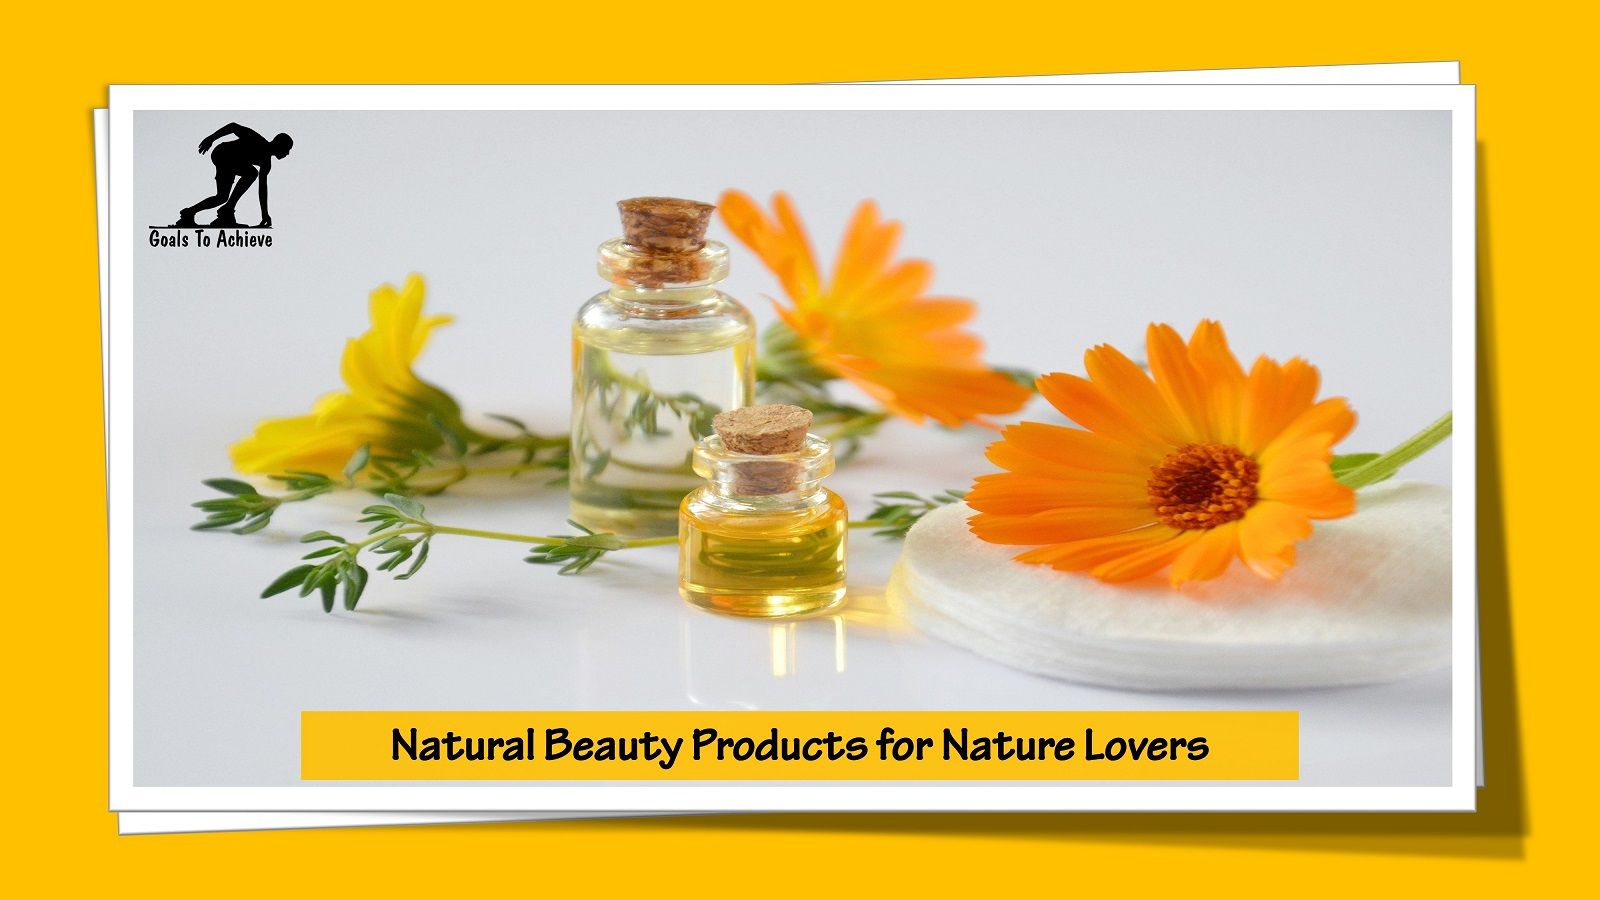 Natural Beauty Products for Nature Lovers